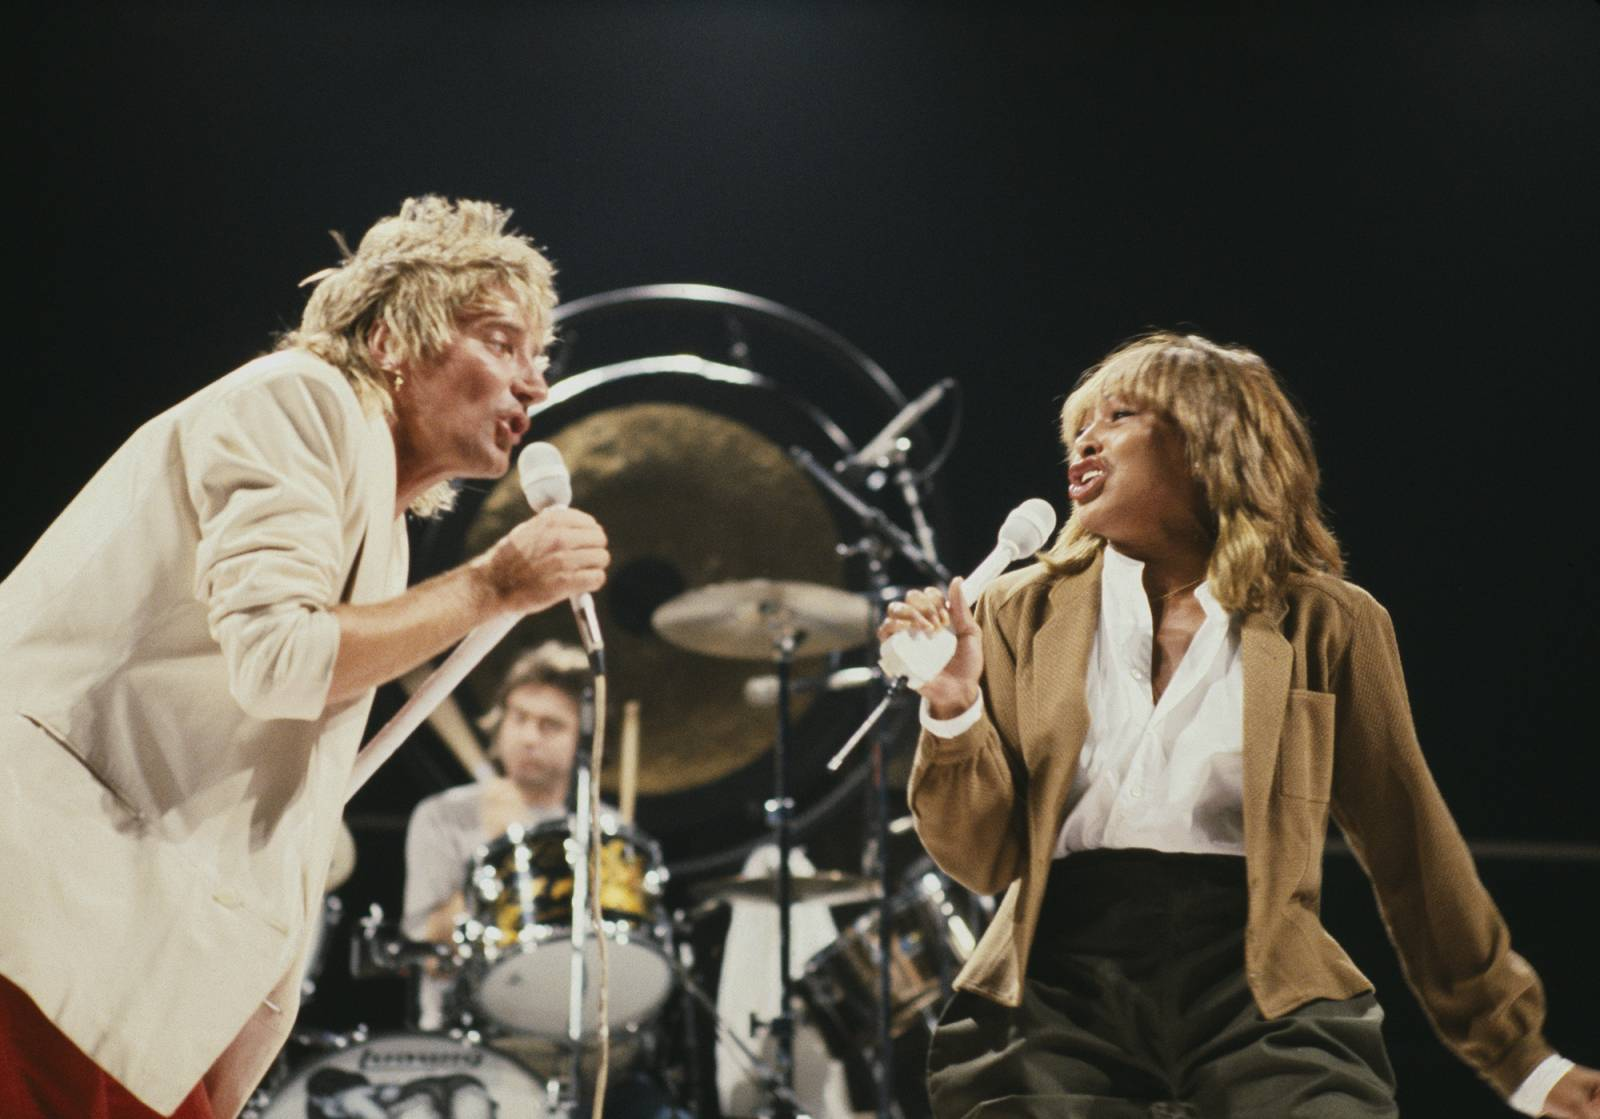 Rod Stewart i Tina Turner podczas koncertu (Fot. Christian SIMONPIETRI/Sygma via Getty Images)